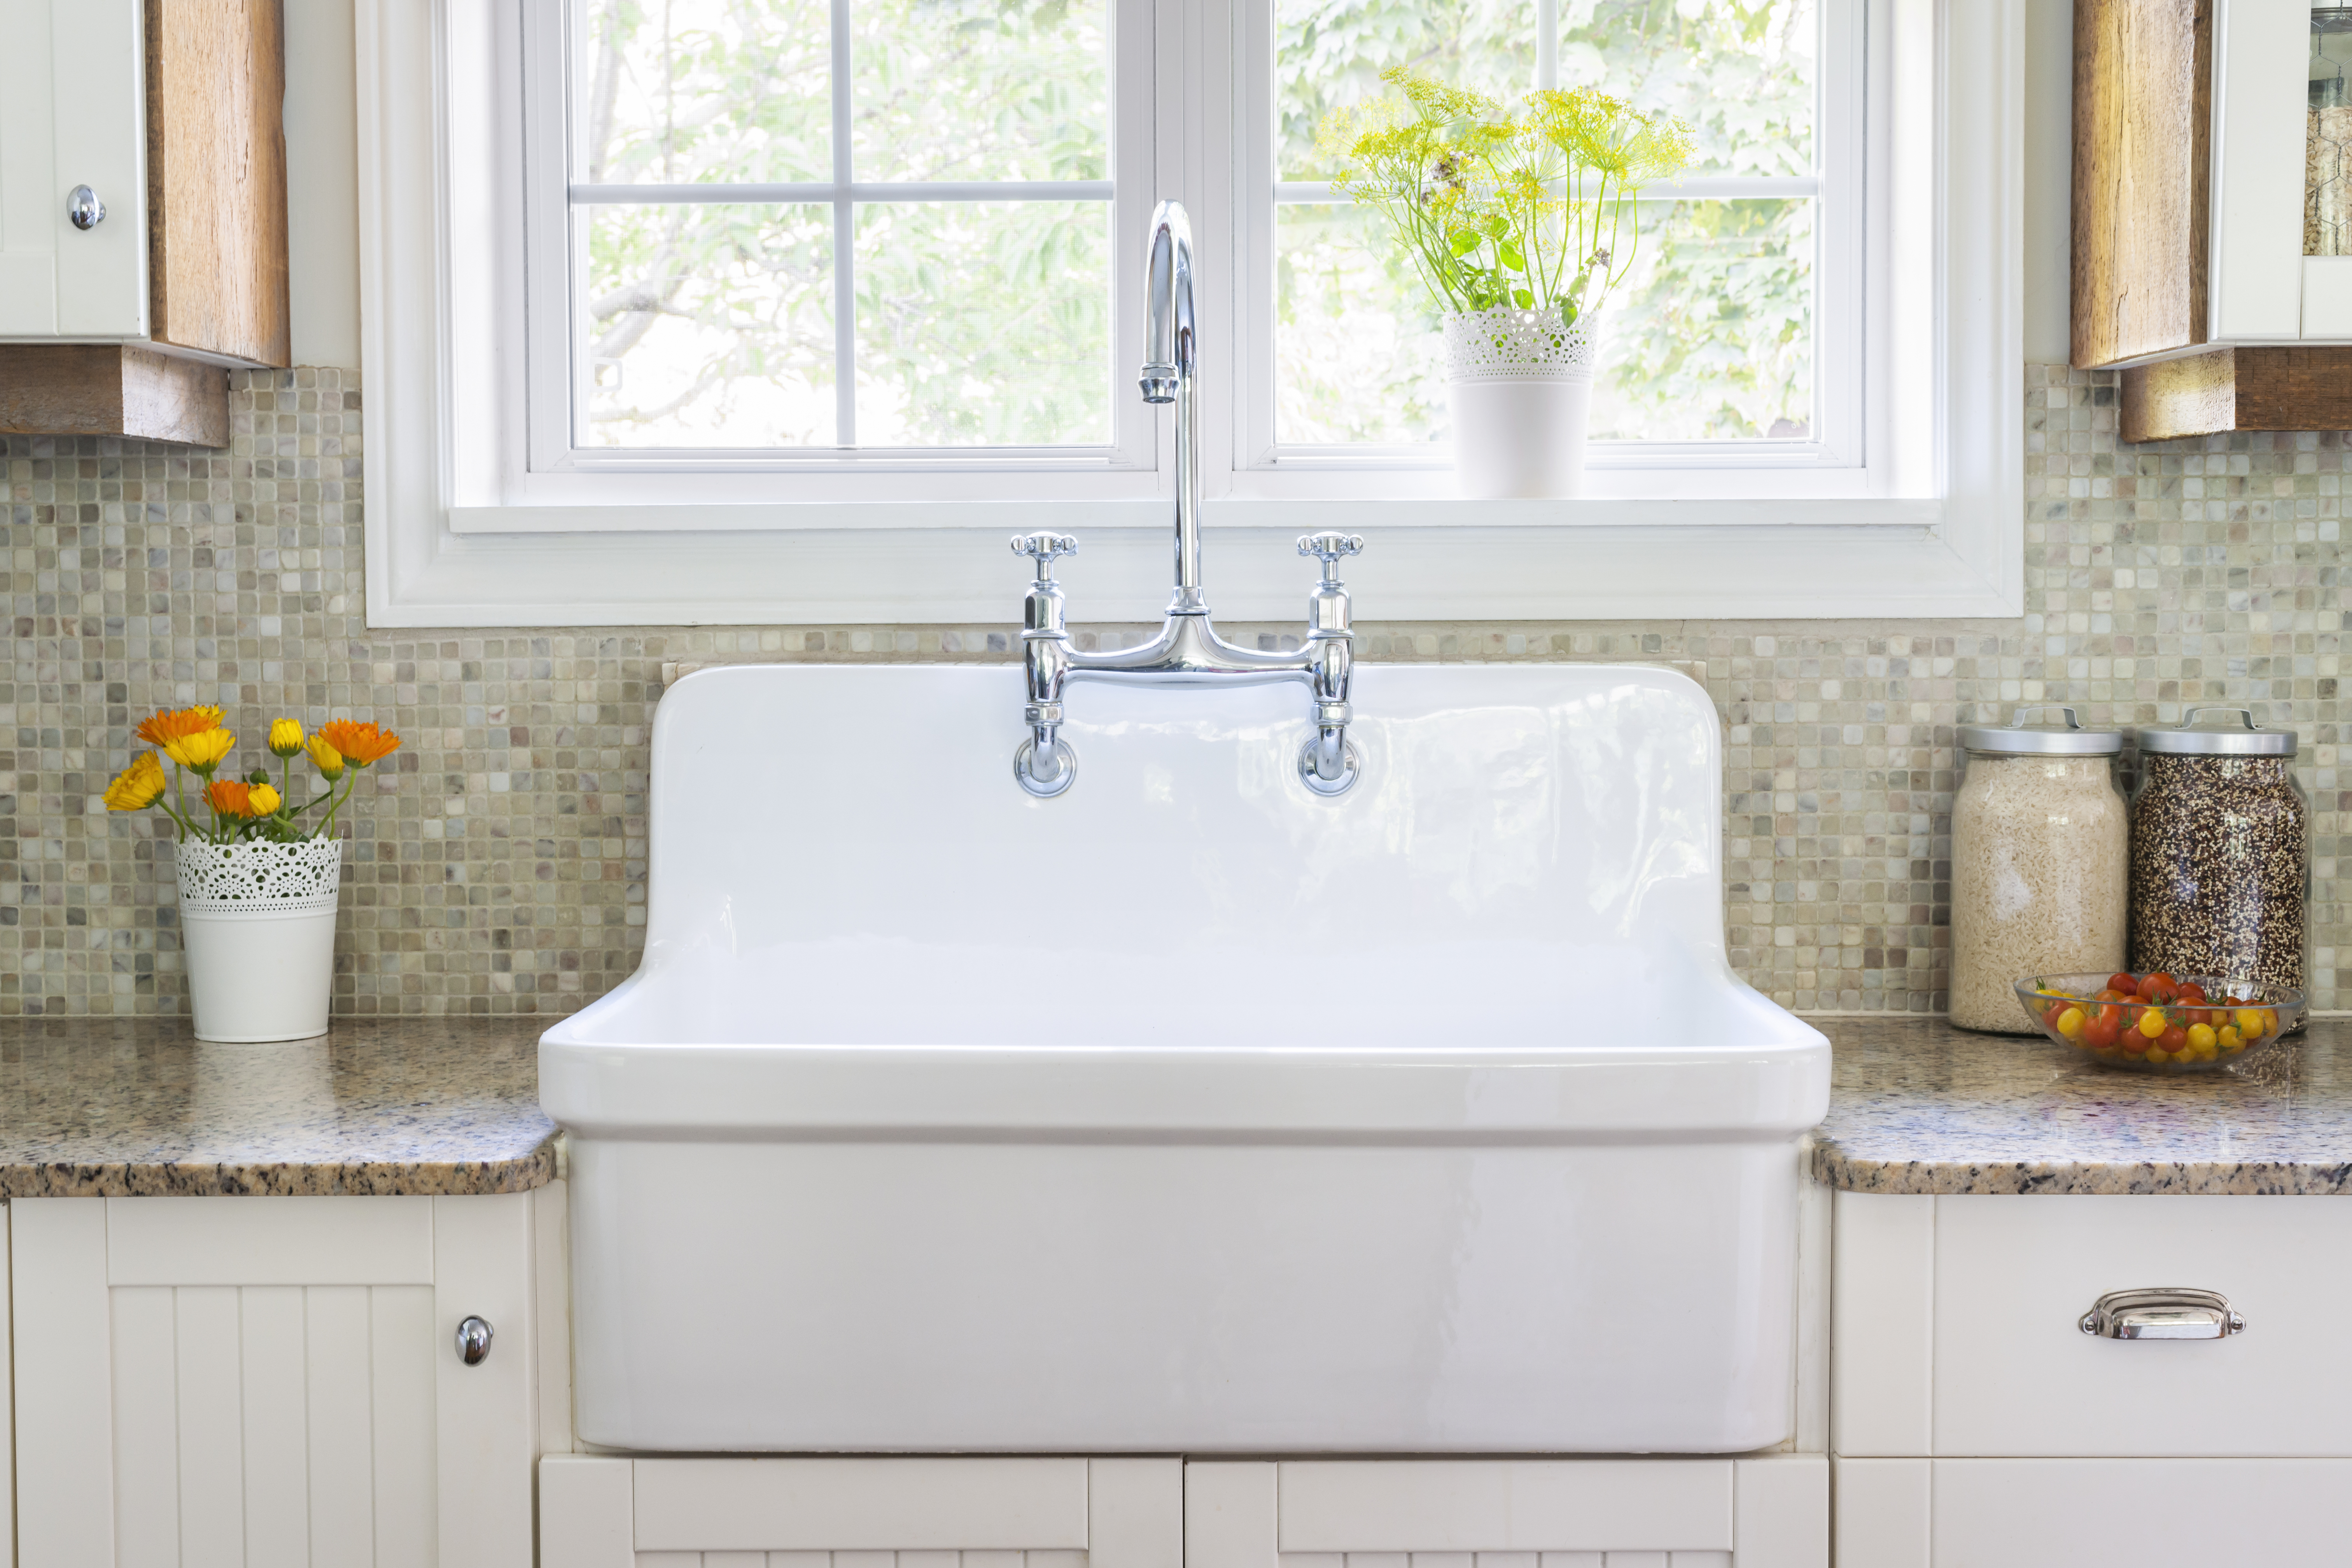 How to Remove Stains From A Porcelain Sink  Hunker